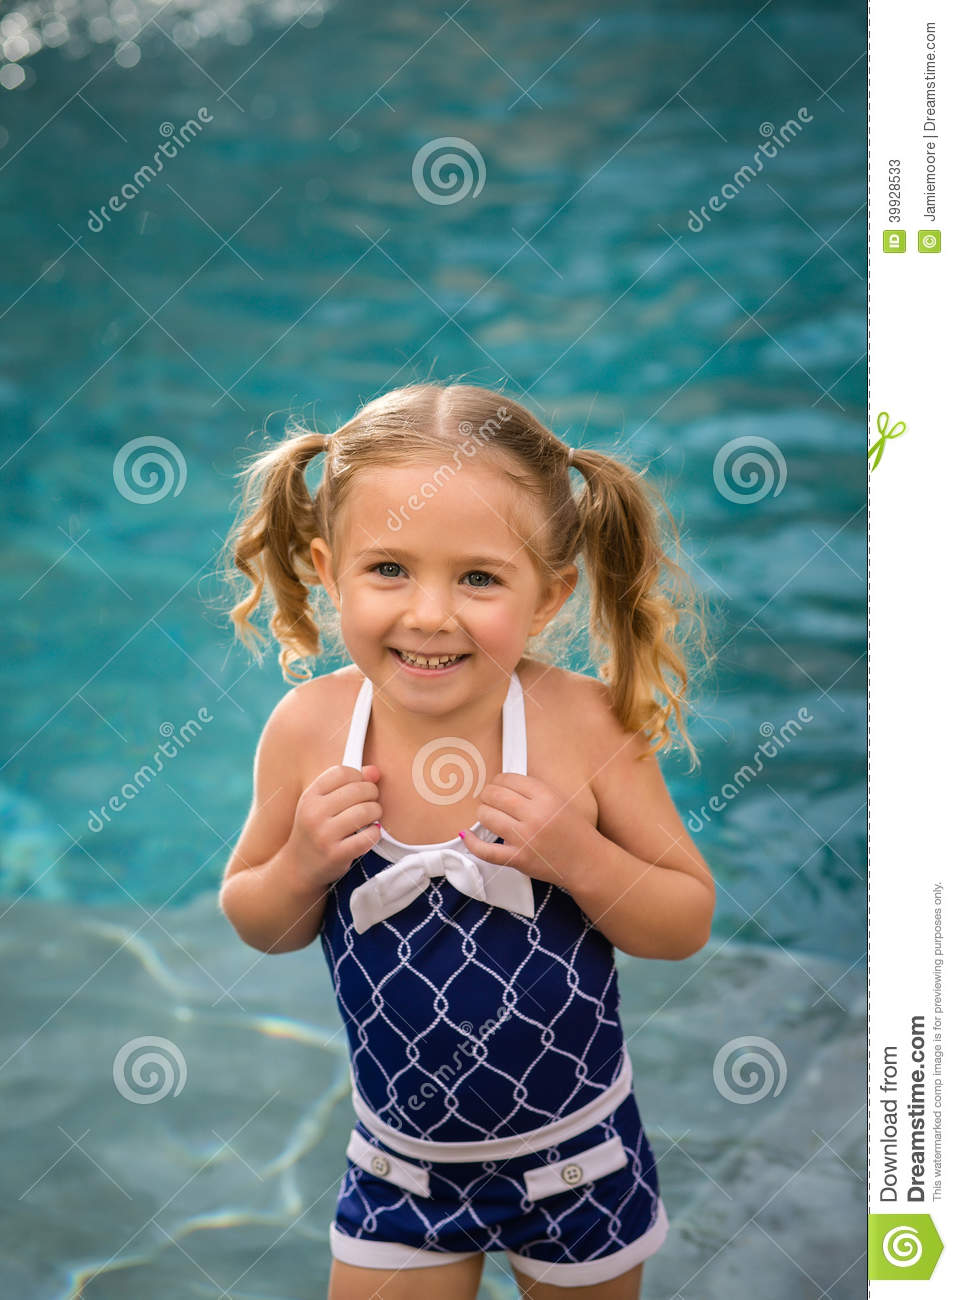 1ebe3aa10f88c Child girl swimsuit water stock image. Image of blue - 39928533